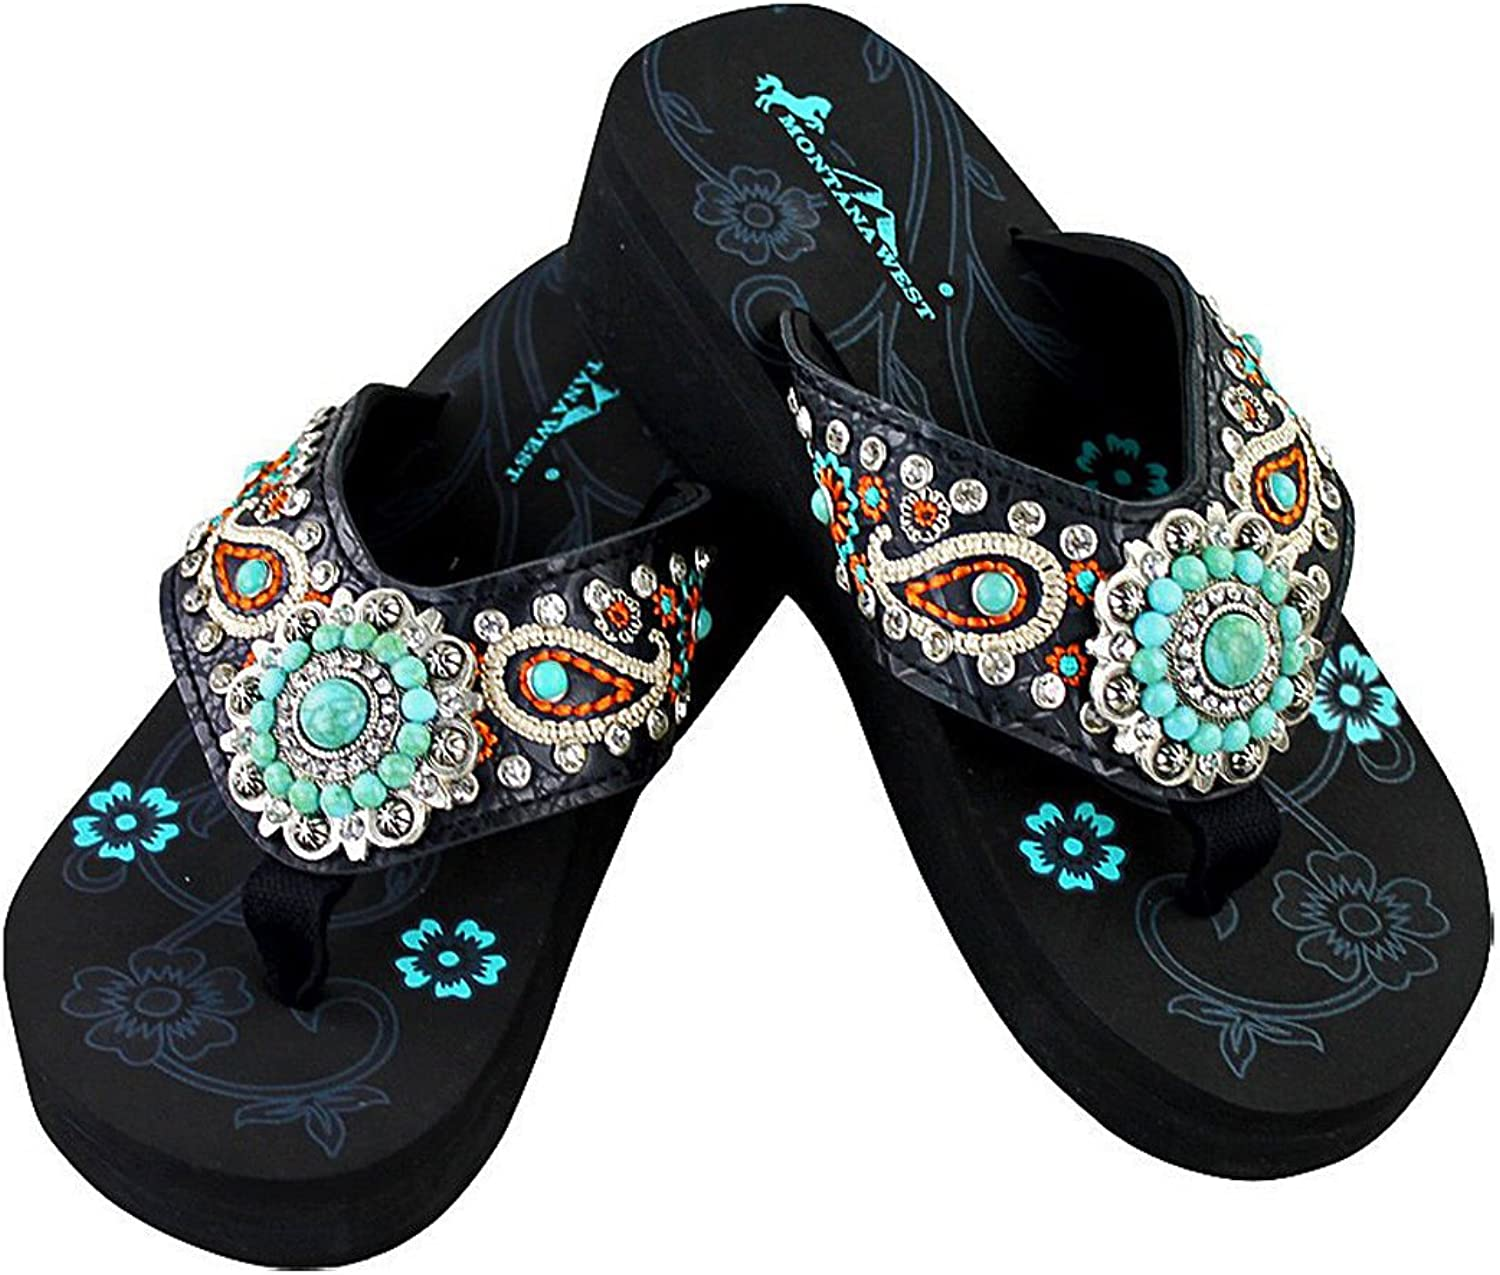 Montana West Embroidered Paisley Wedge Flip Flops, Sizes 6-11 - Black(10)